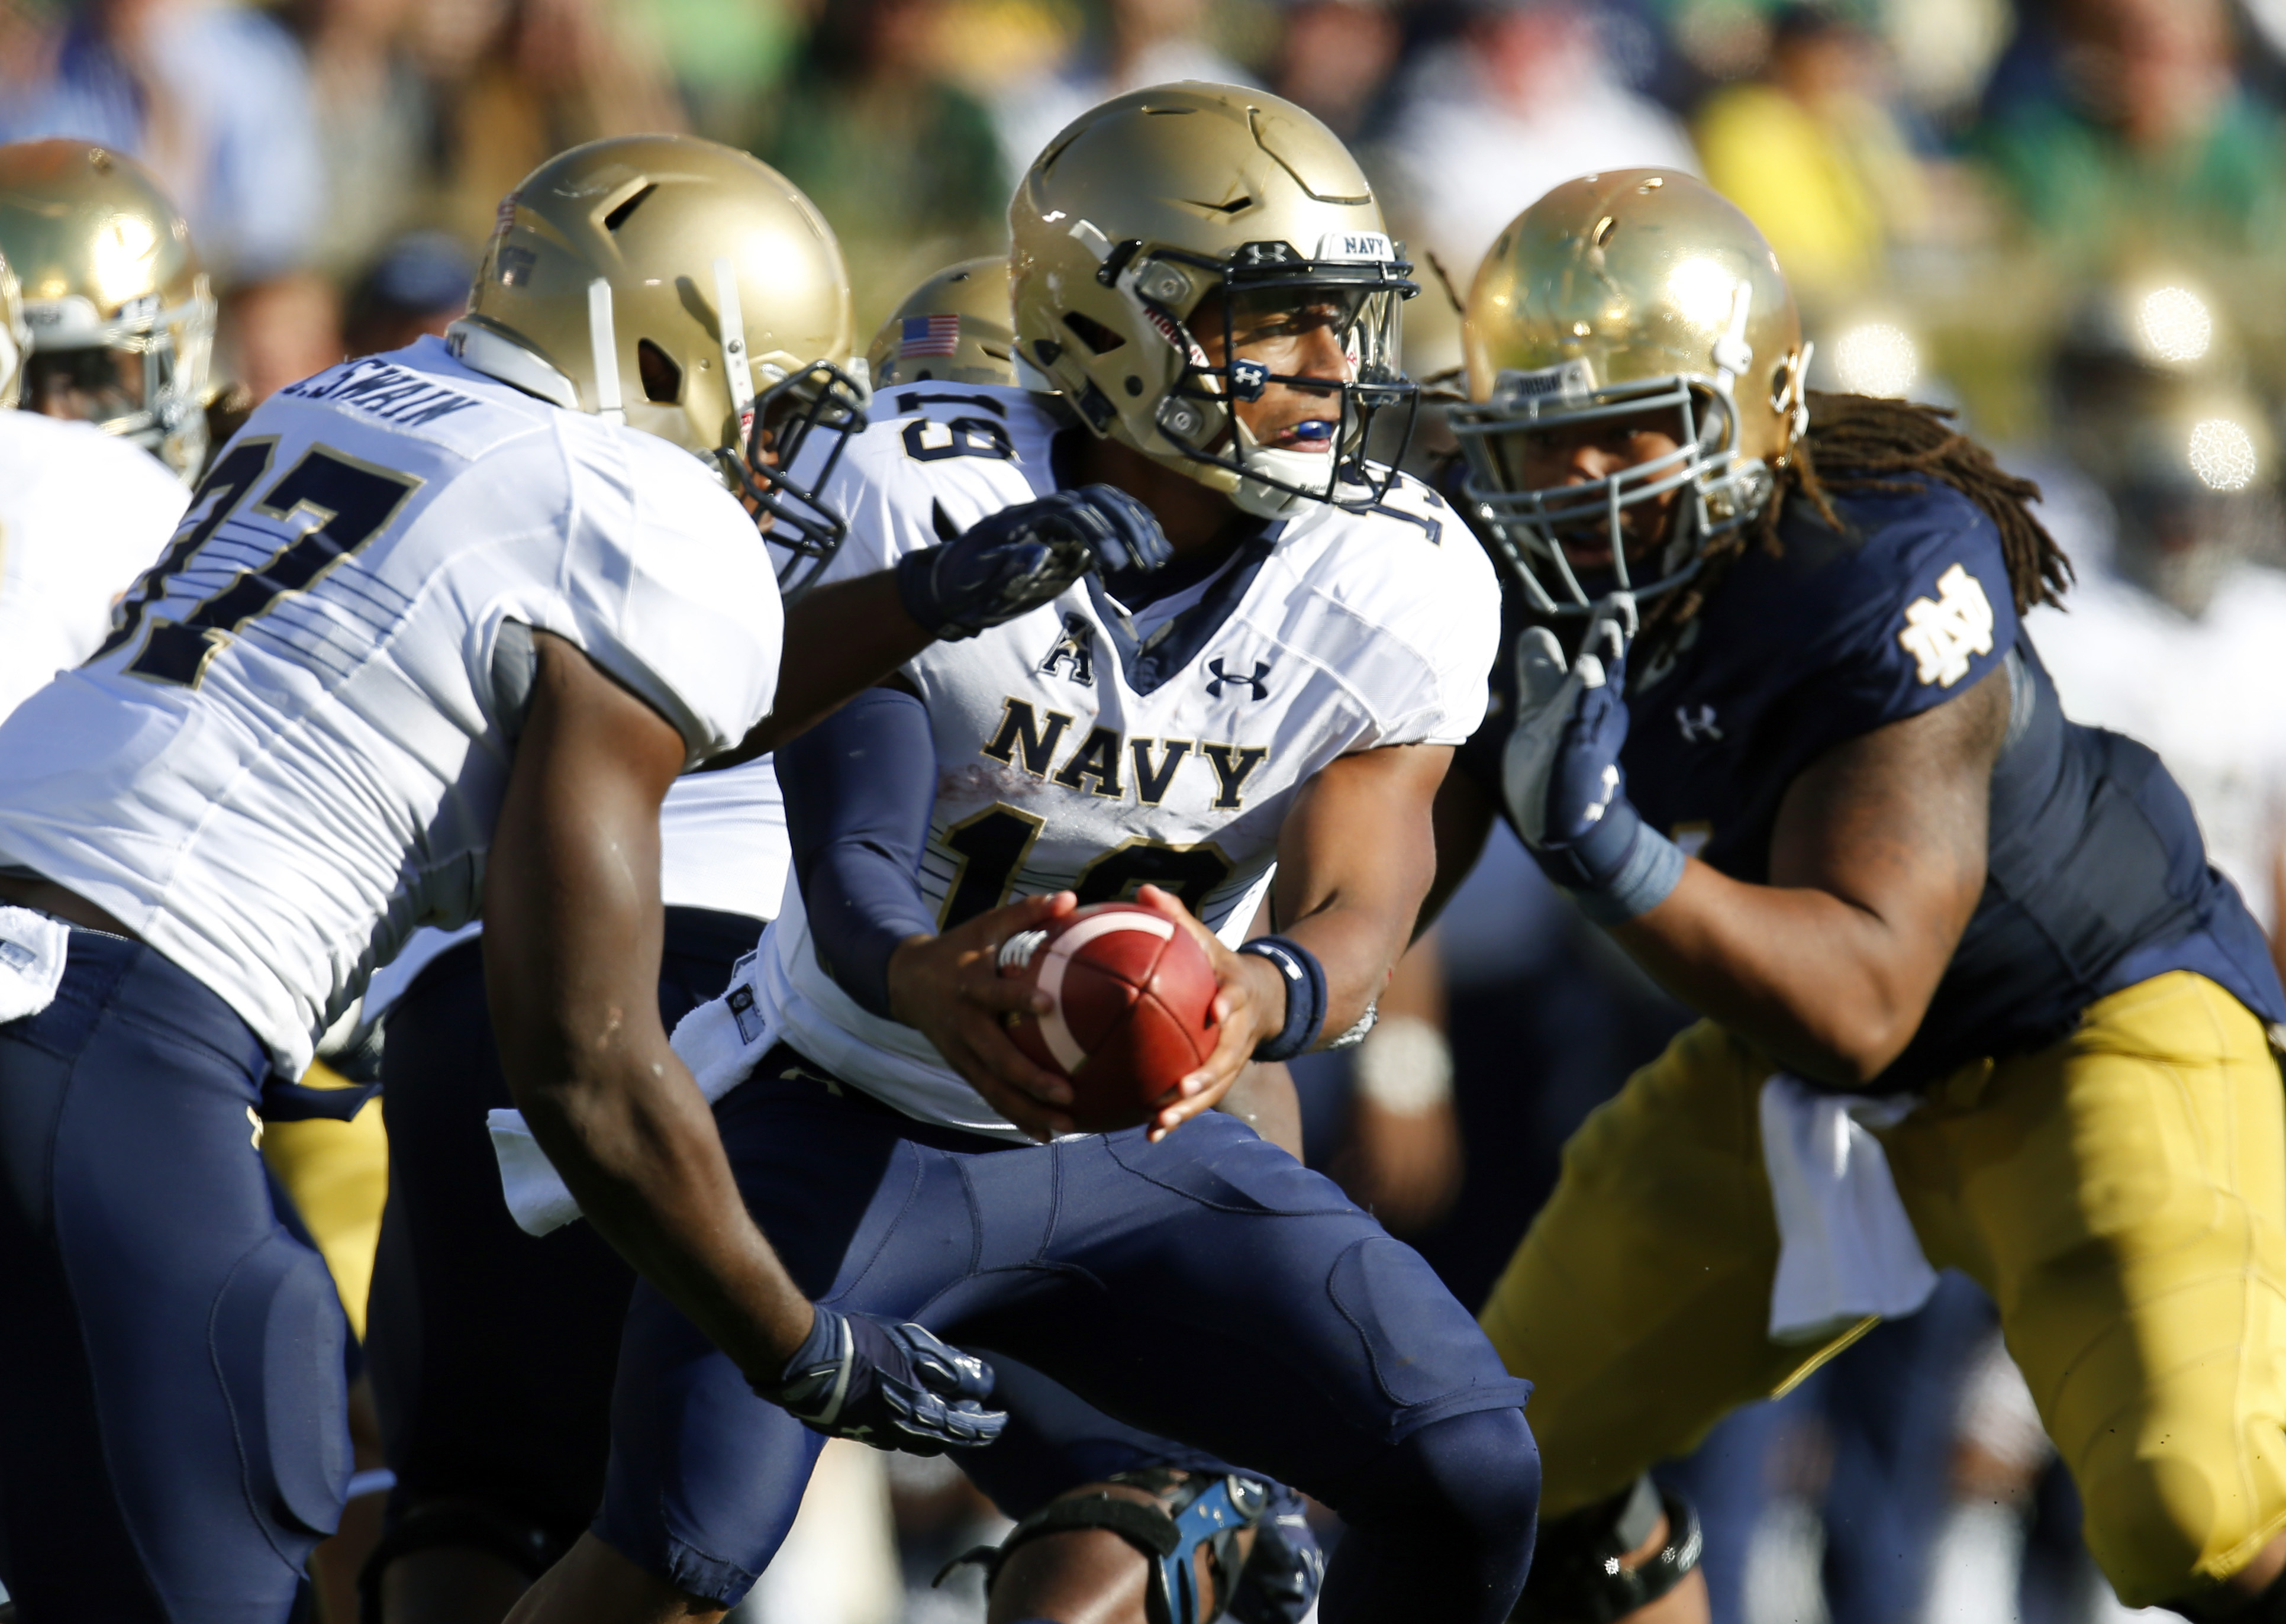 Navy quarterback Keenan Reynolds (19) looks to hand off to fullback Chris Swain during the first half of an NCAA college football game against Notre Dame, Saturday, Oct. 10, 2015, in South Bend, Ind. (AP Photo/Jeff Haynes)